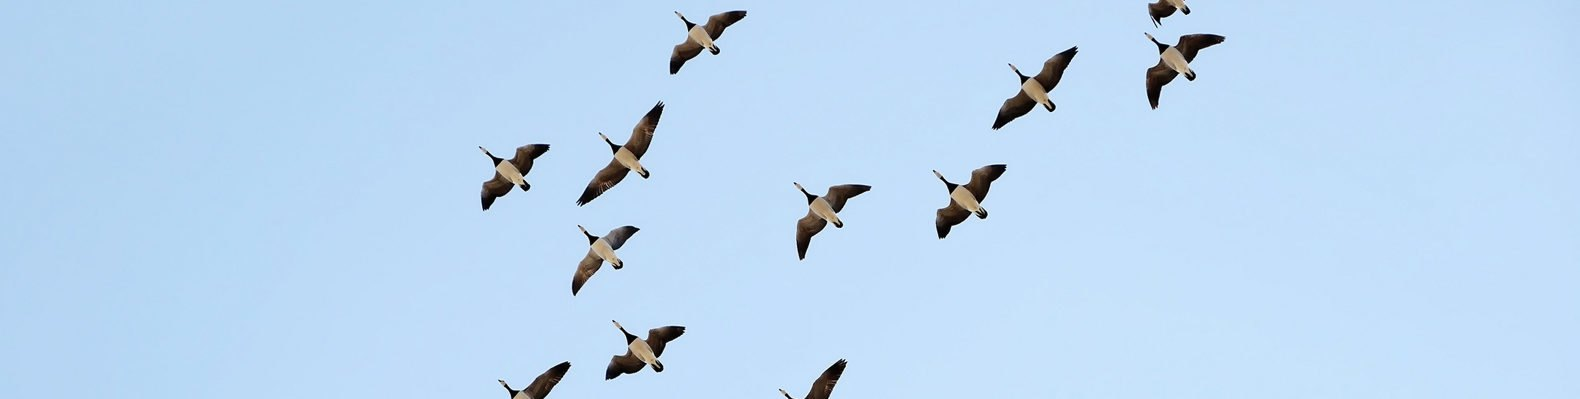 barnacle geese flying against blue sky